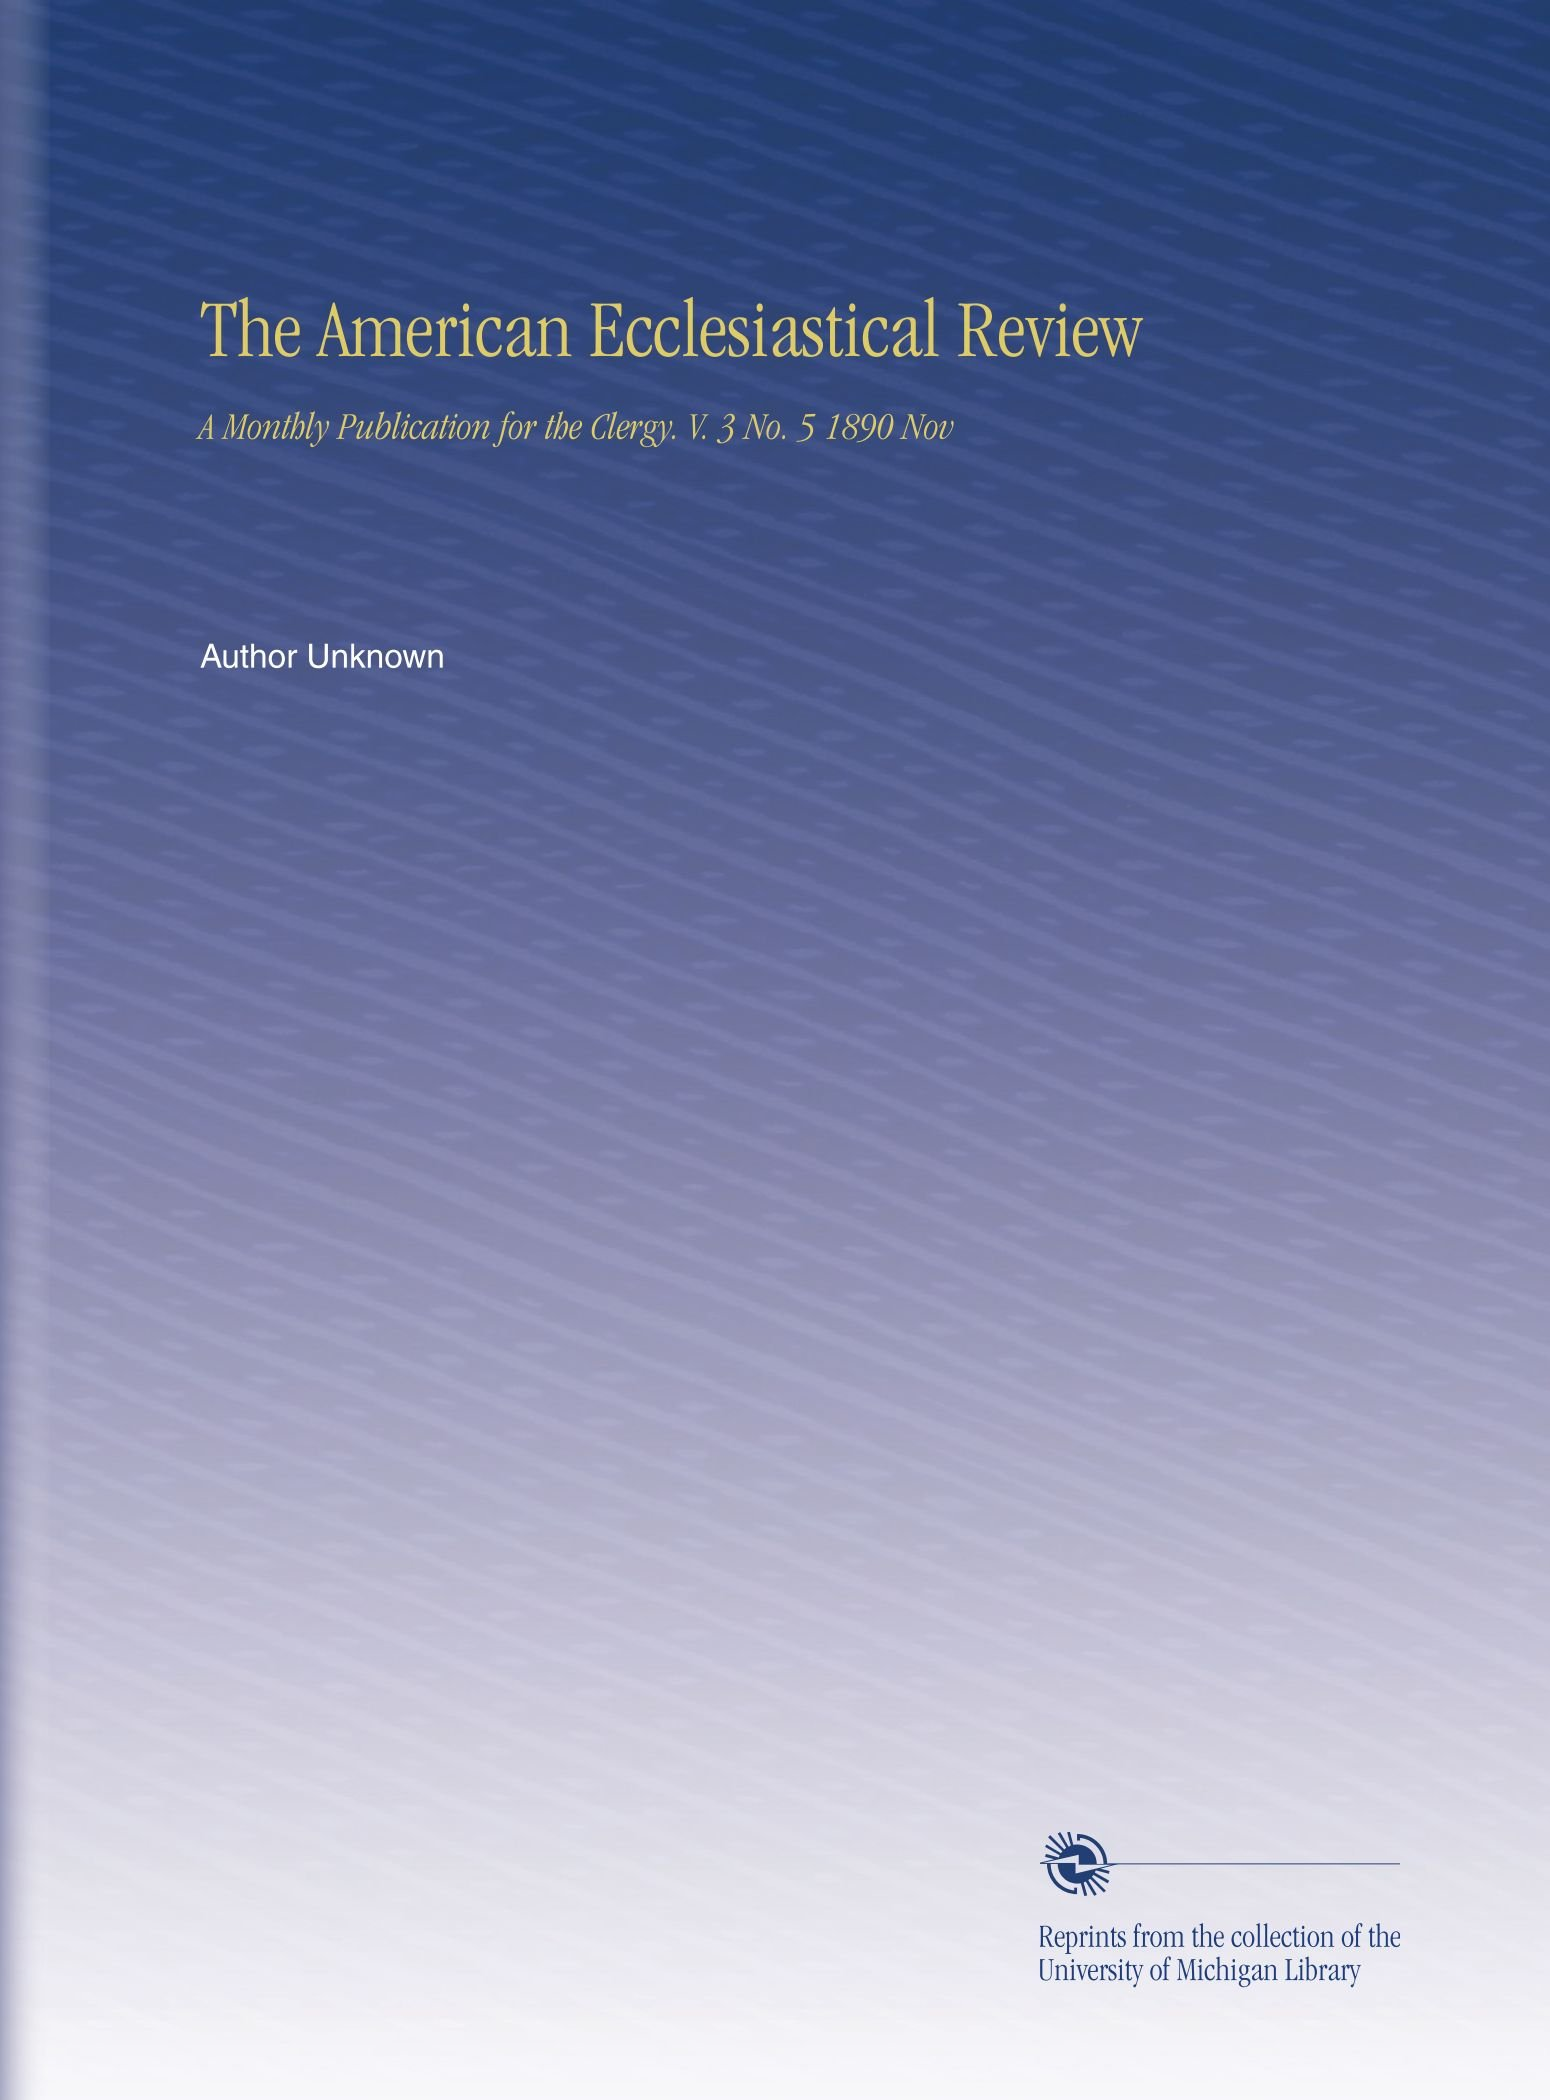 Download The American Ecclesiastical Review: A Monthly Publication for the Clergy. V. 3 No. 5 1890 Nov pdf